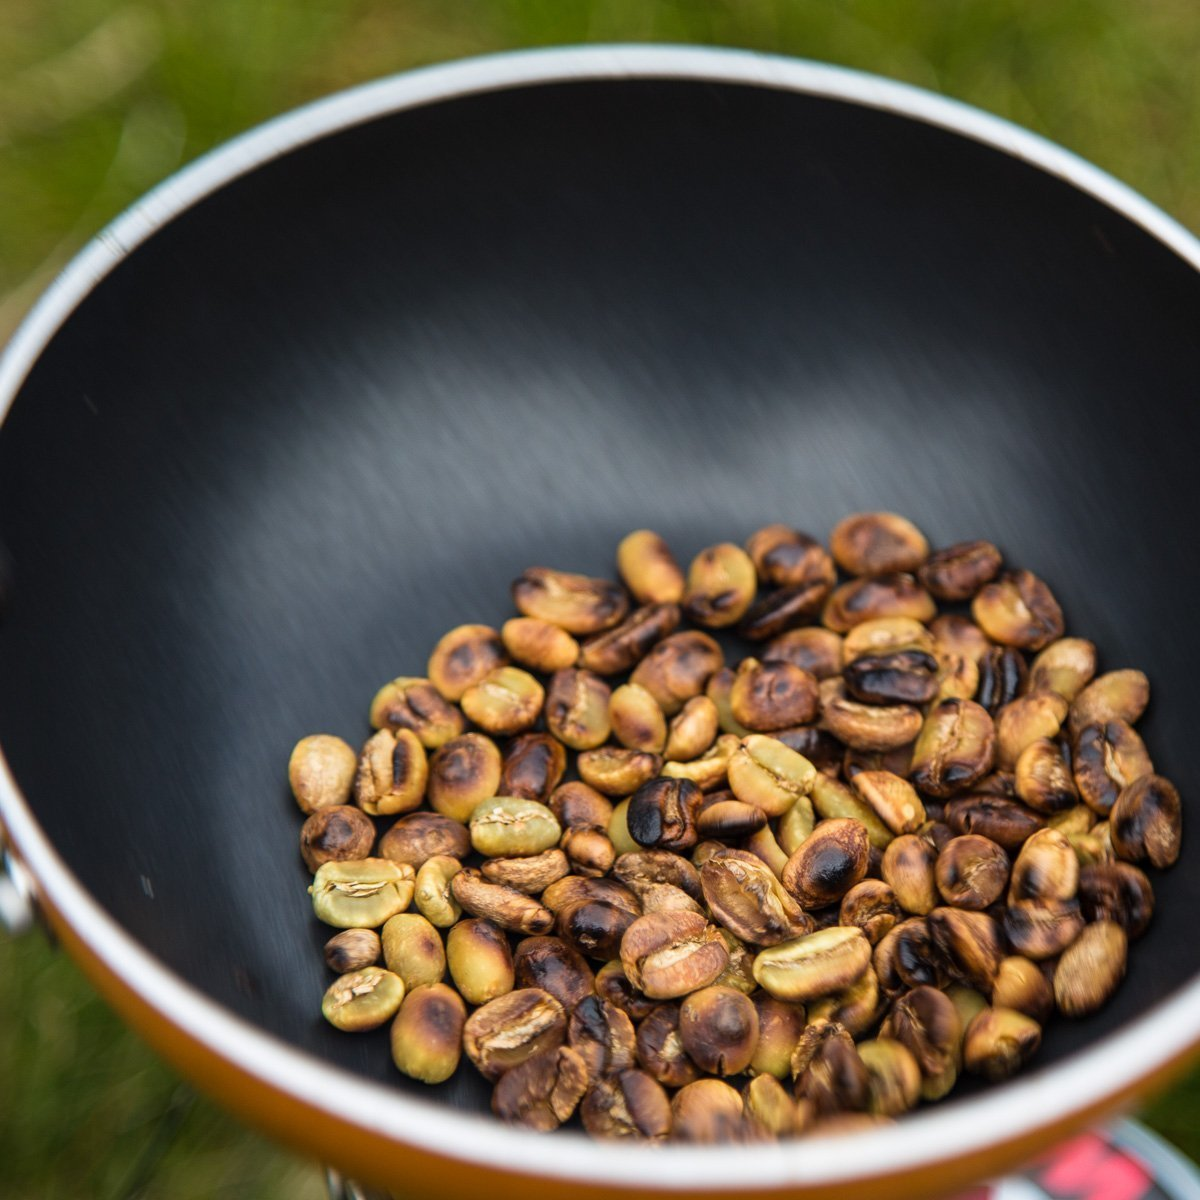 bochlwyd_coffee_roasting (4 of 7)